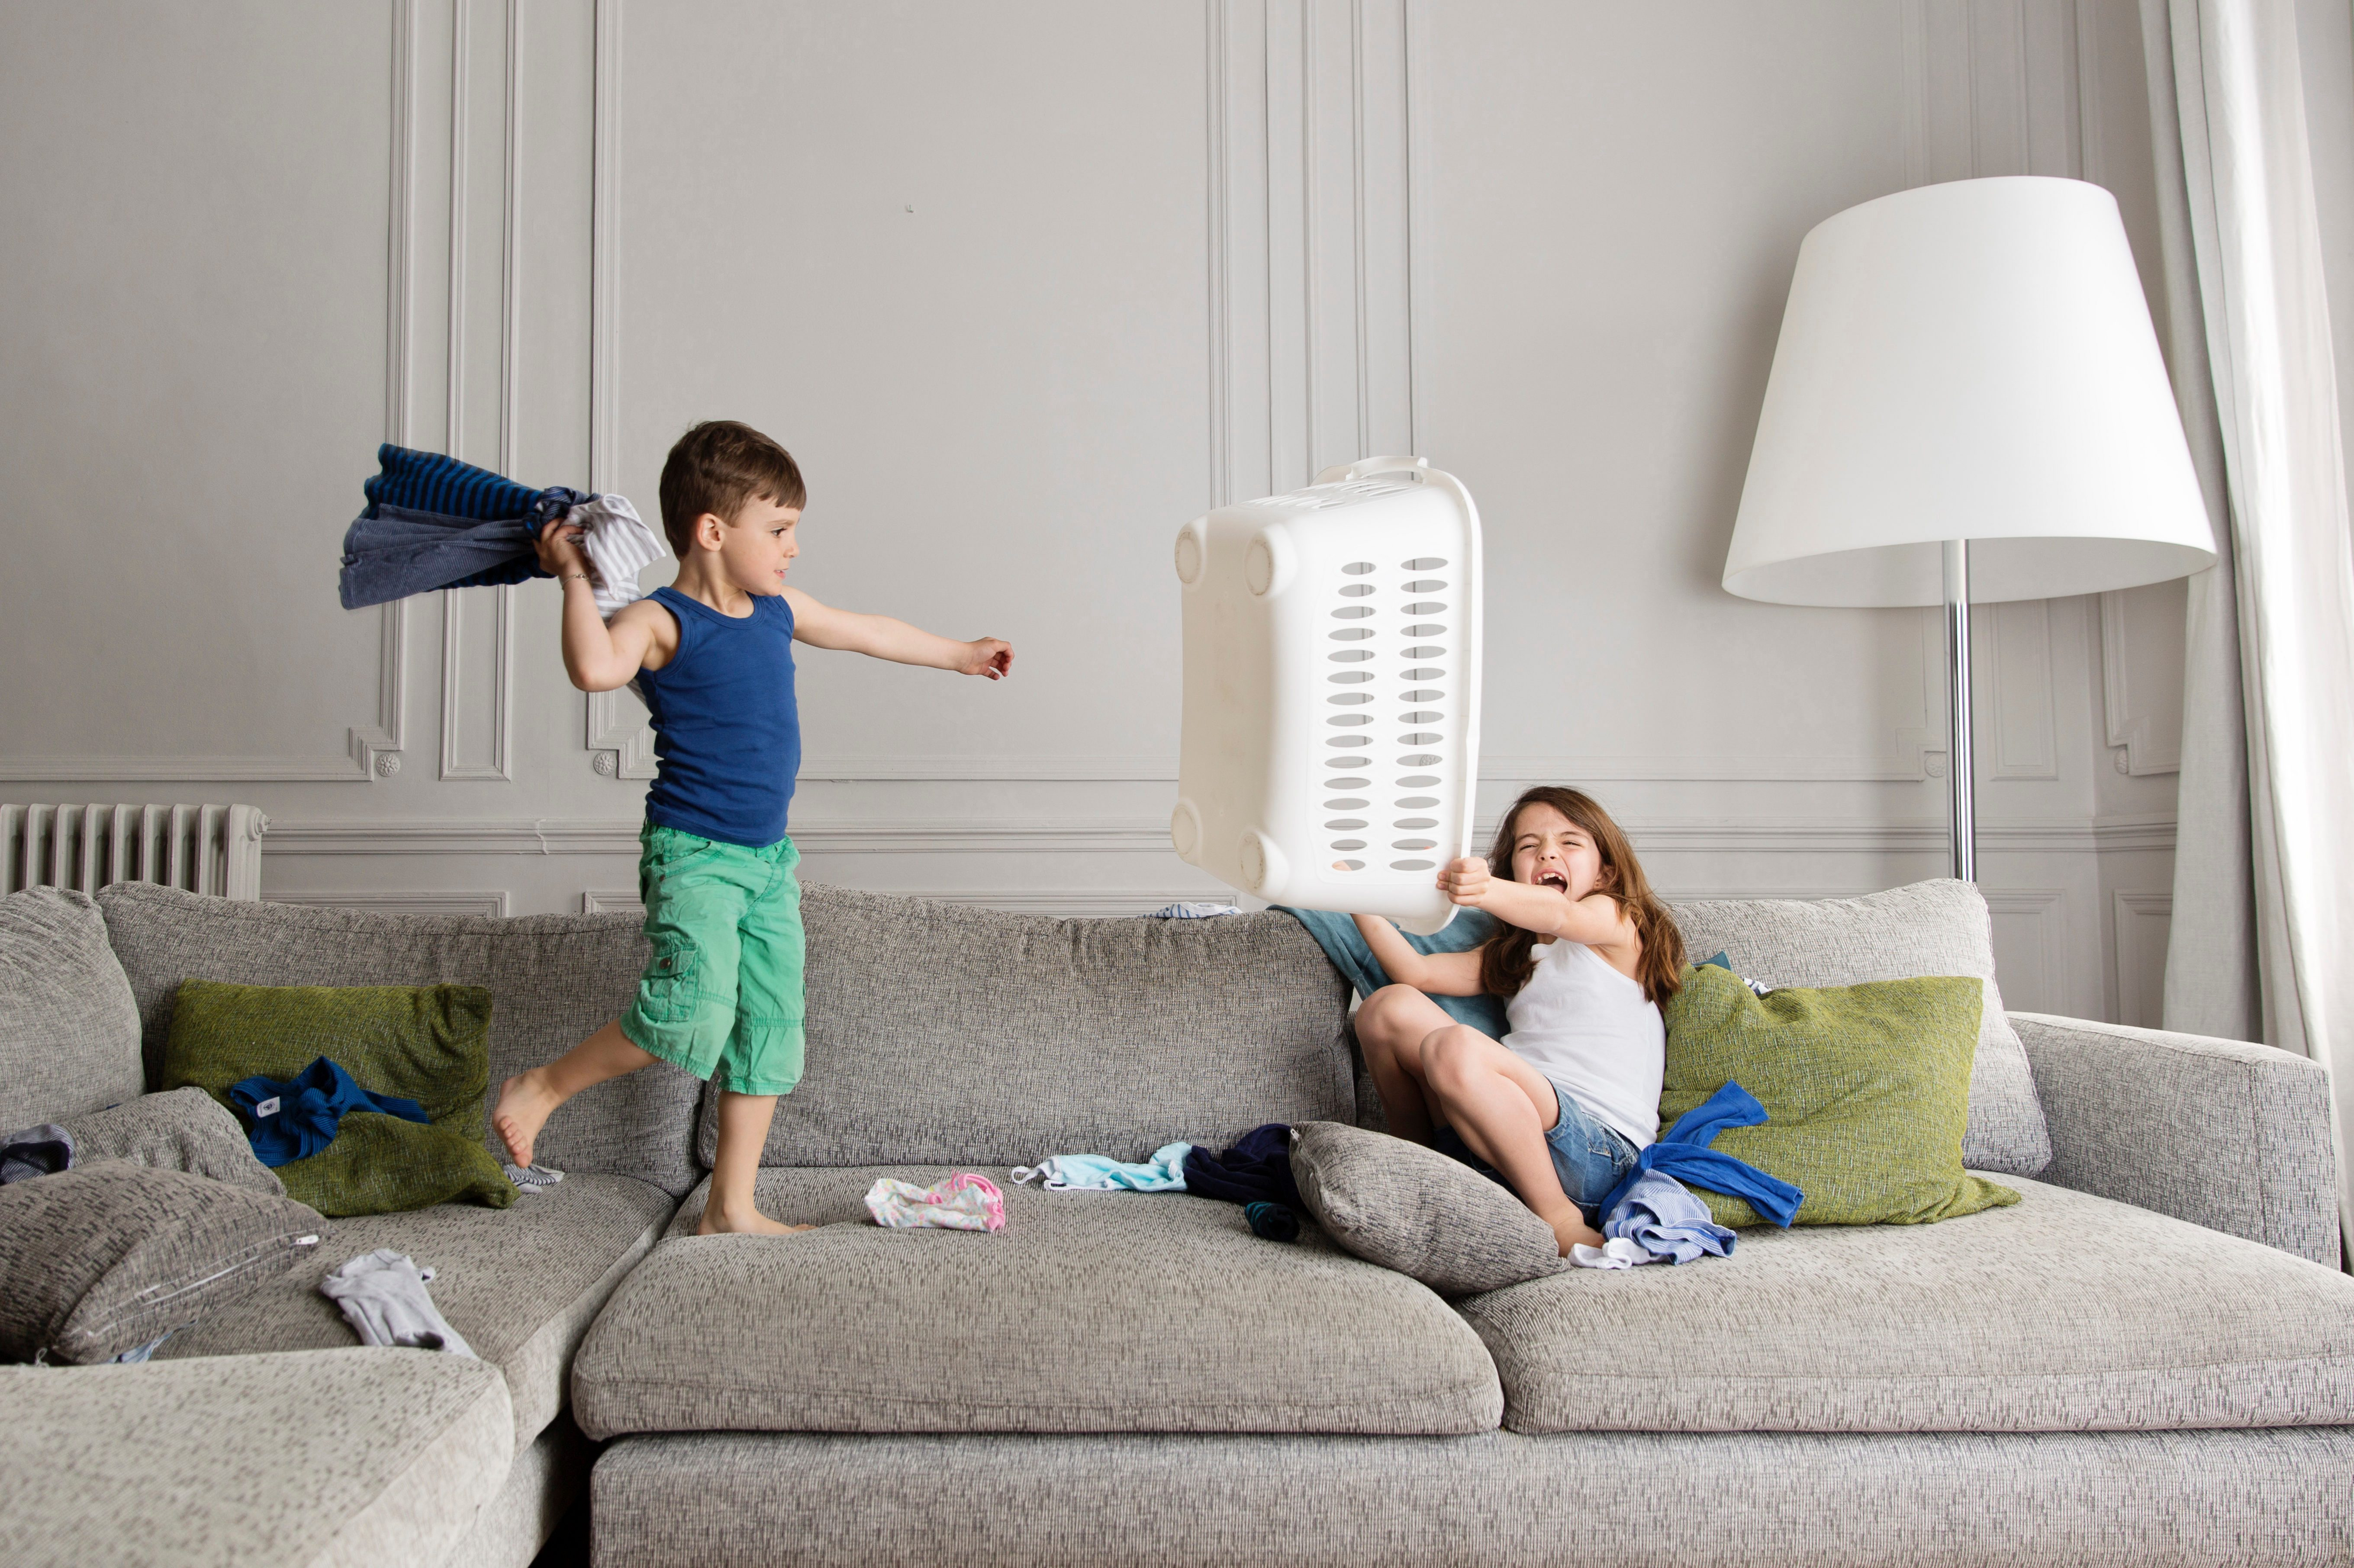 Little boy standing on the couch fighting with laundry while his sister protecting herself with laundry basket